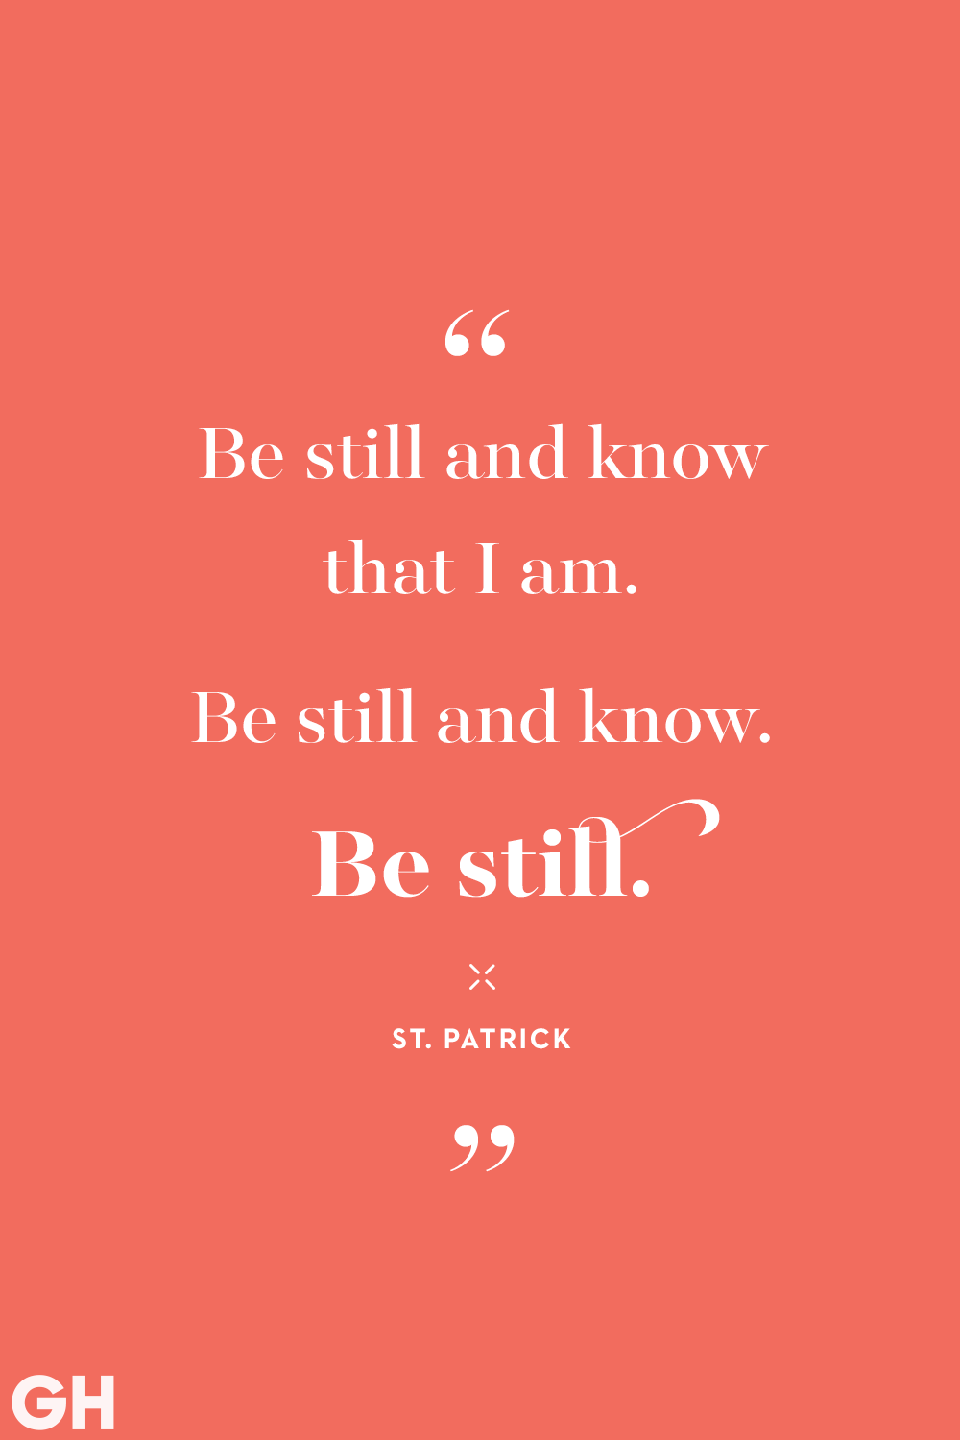 <p>Be still and know that I am.</p><p>Be still and know.</p><p>Be still.Be.</p>